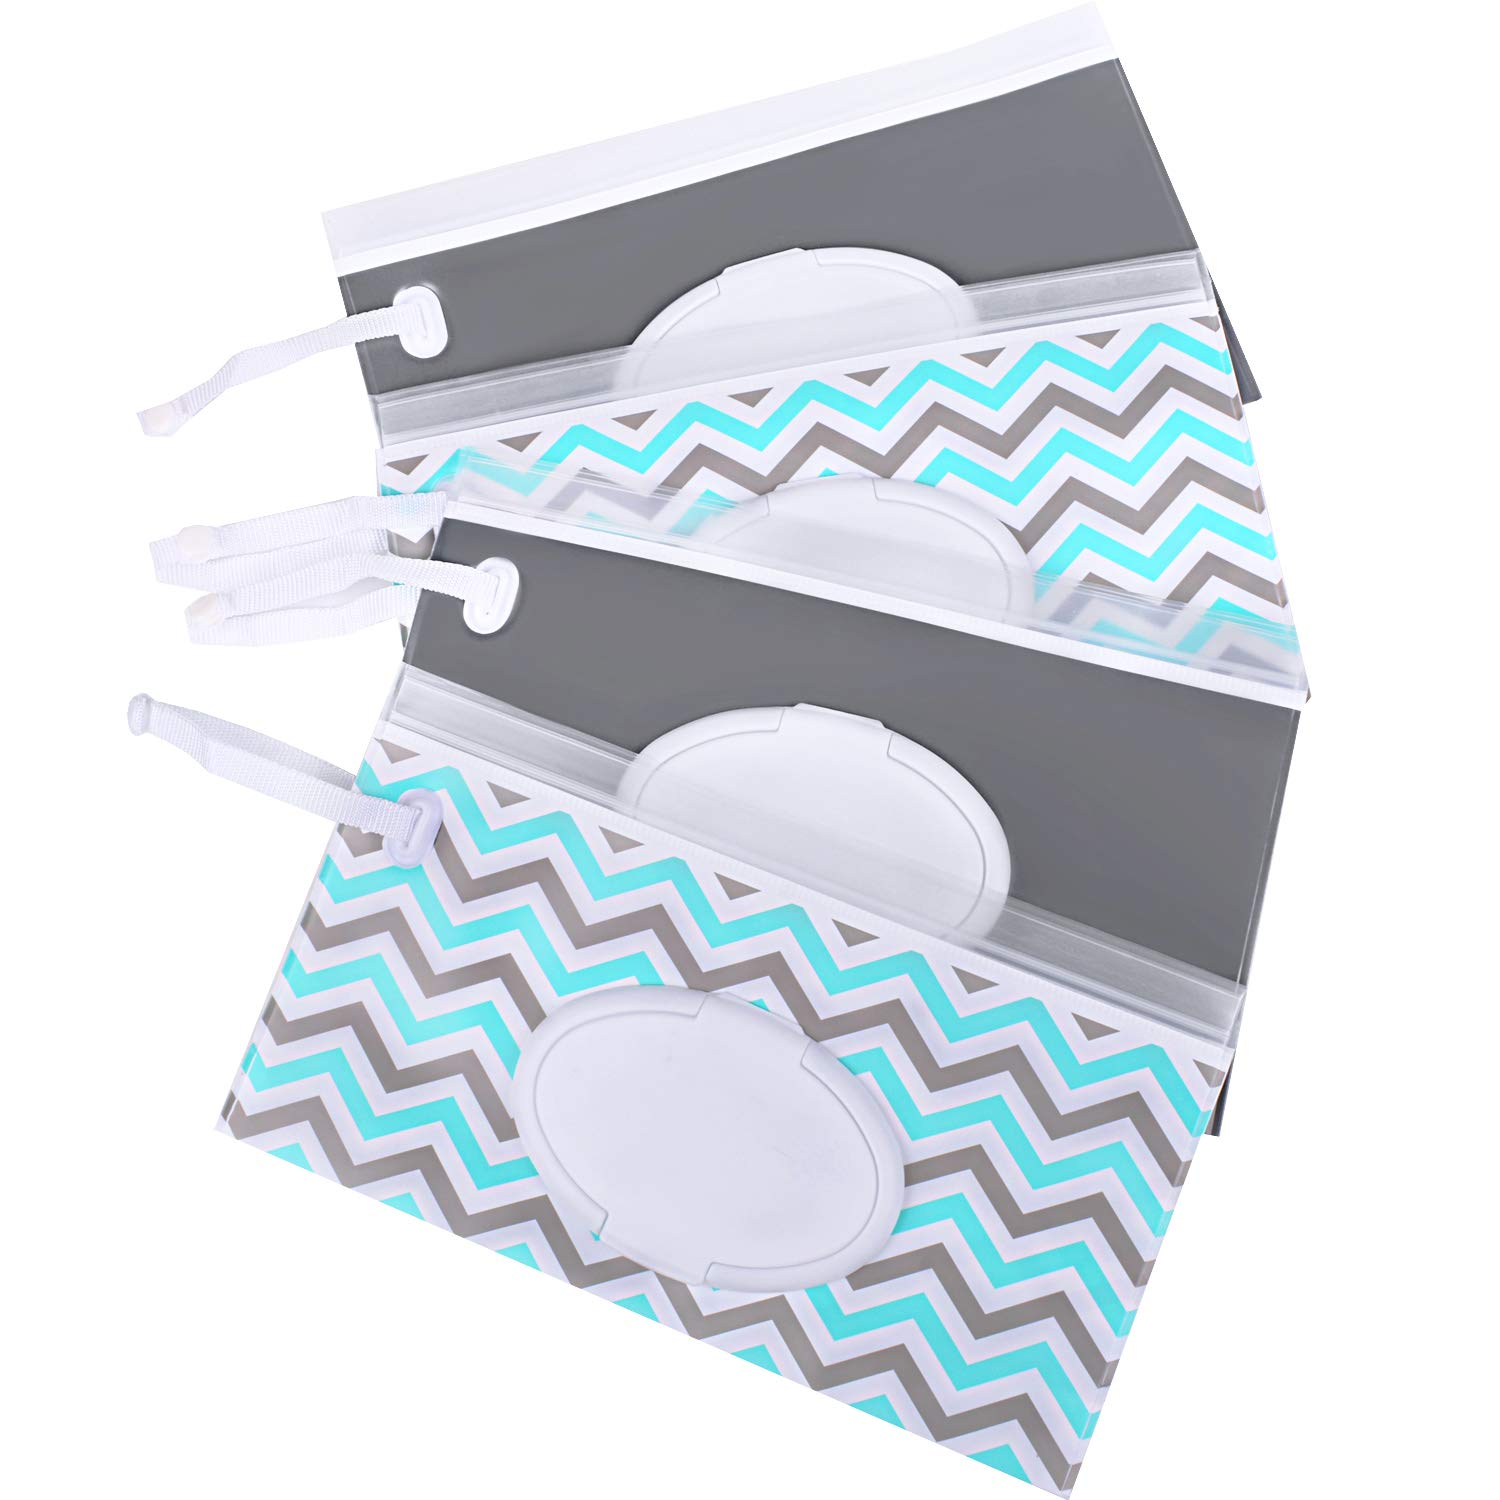 Venhoo Wet Wipe Pouch 4-Pack Reusable Refillable Clutch Wipes Dispenser Holder Case-Keep Wet Wipes Moist- Eco Friendly Wipes Carrying Case for Travel-Pouch Carries 60 Wipes-Upgrade Version